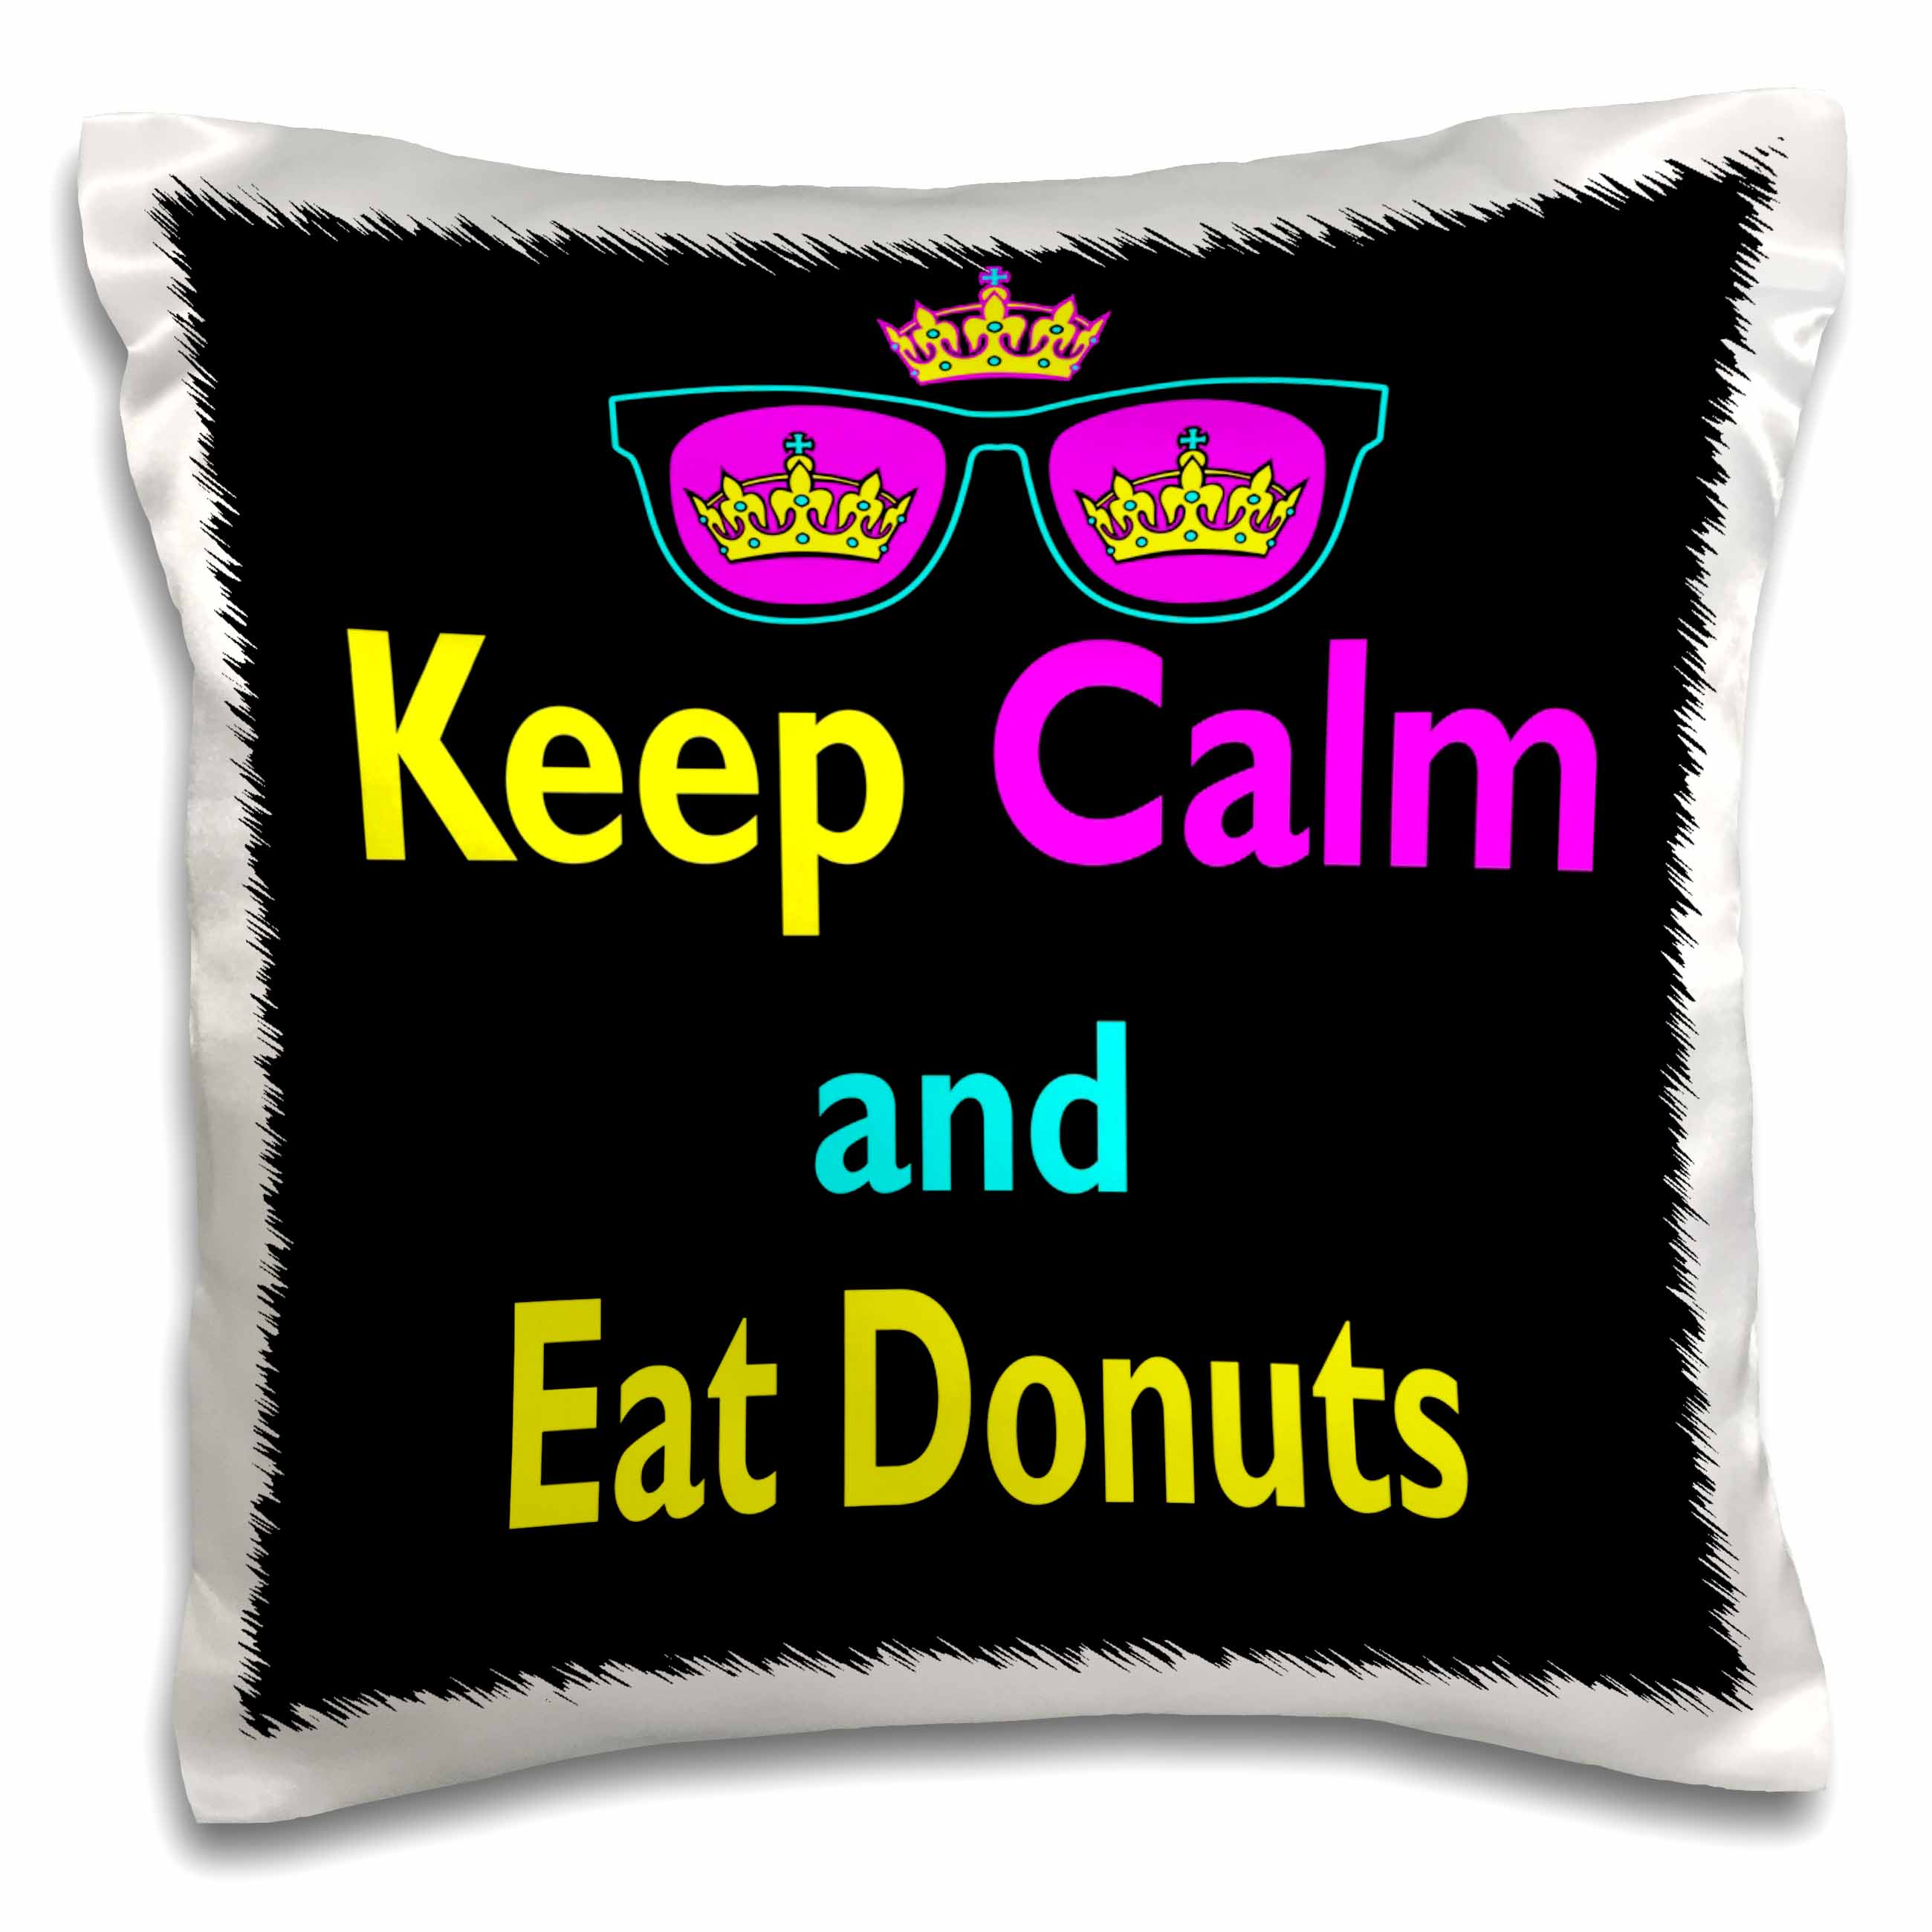 3dRose CMYK Keep Calm Parody Hipster Crown And Sunglasses Keep Calm And Eat Donuts, Pillow Case, 16 by 16-inch